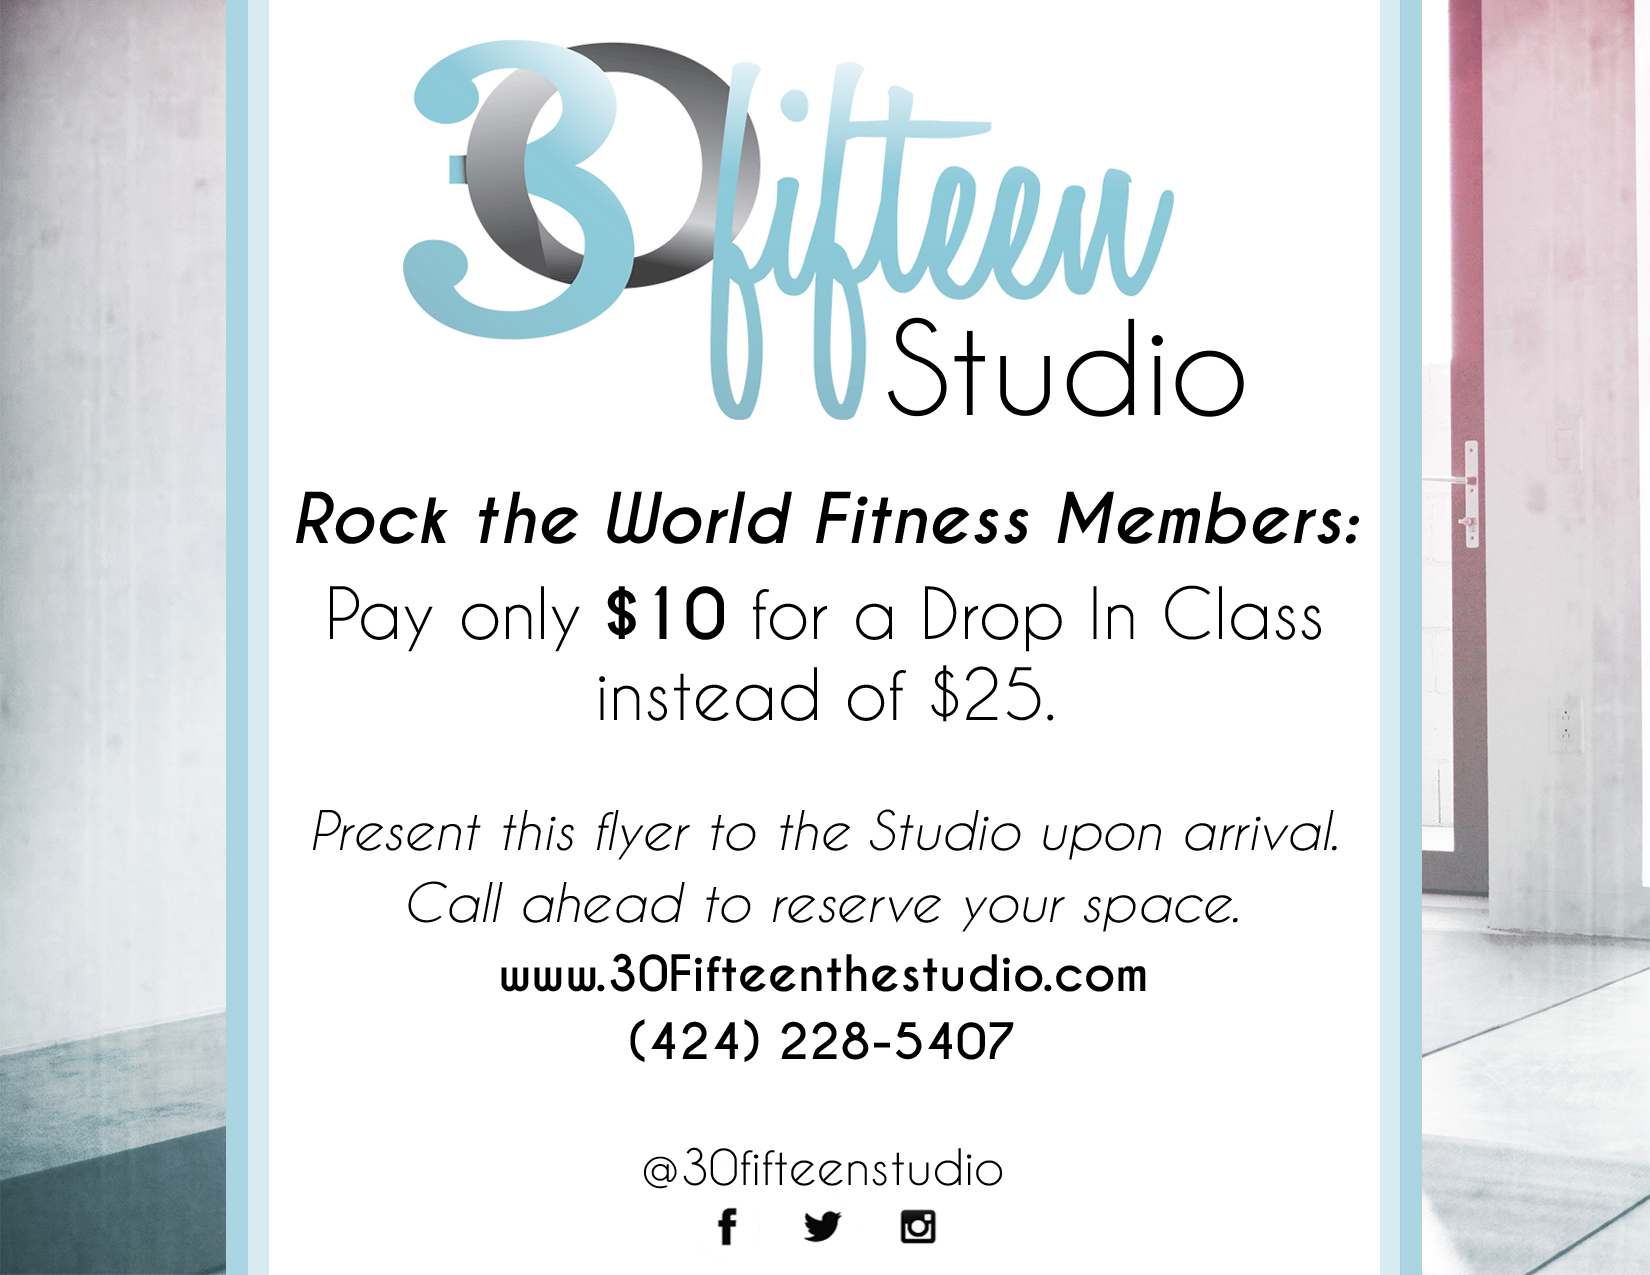 This is a flyer created for 30Fifteen Studio, which partnered with Rock the World Fitness.